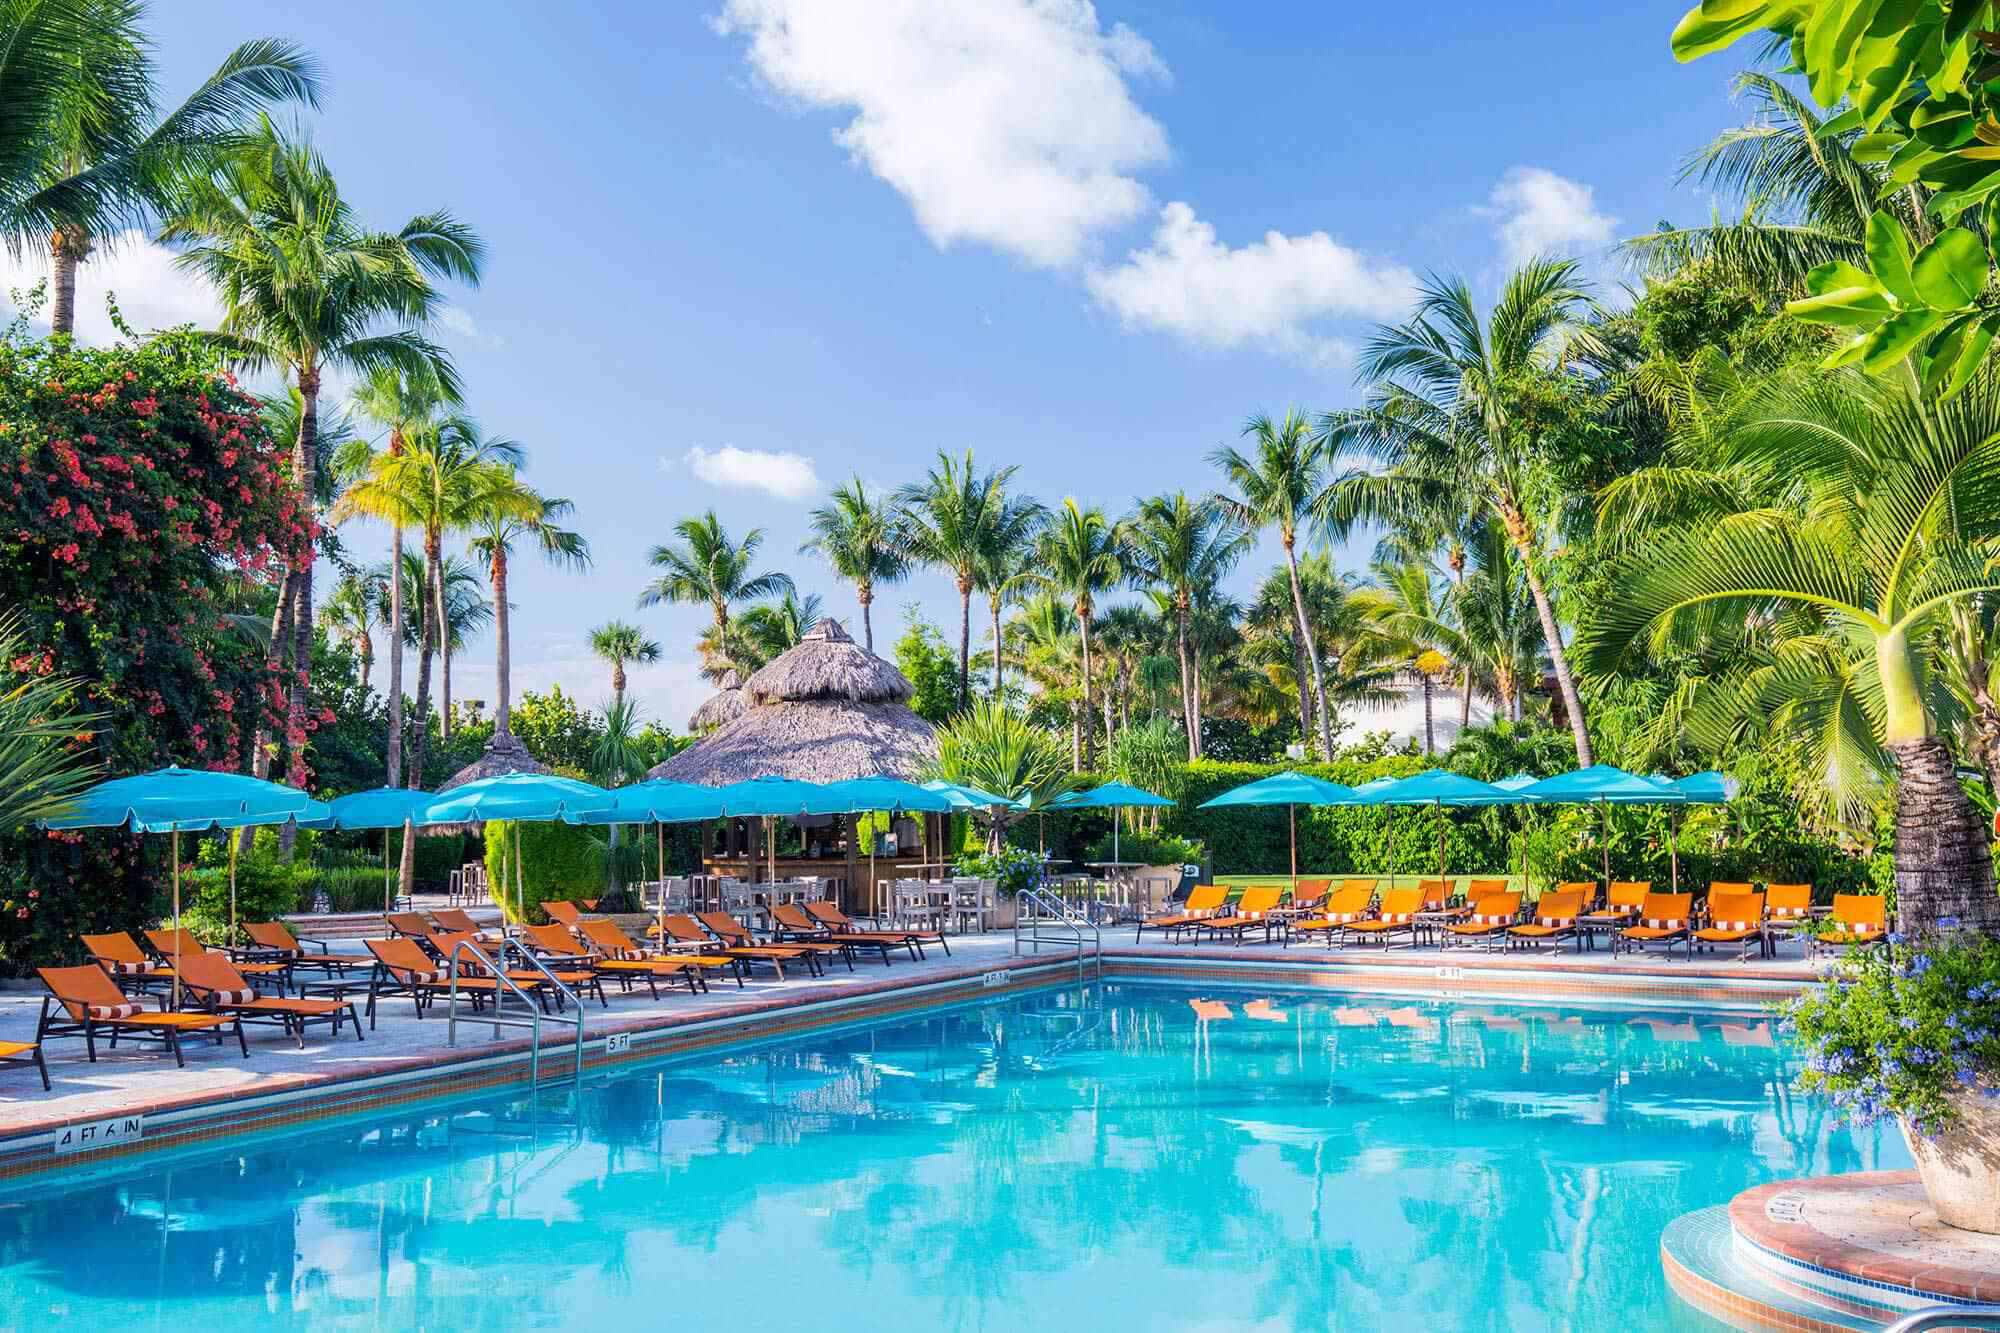 The Palms Hotel and Spa, Florida